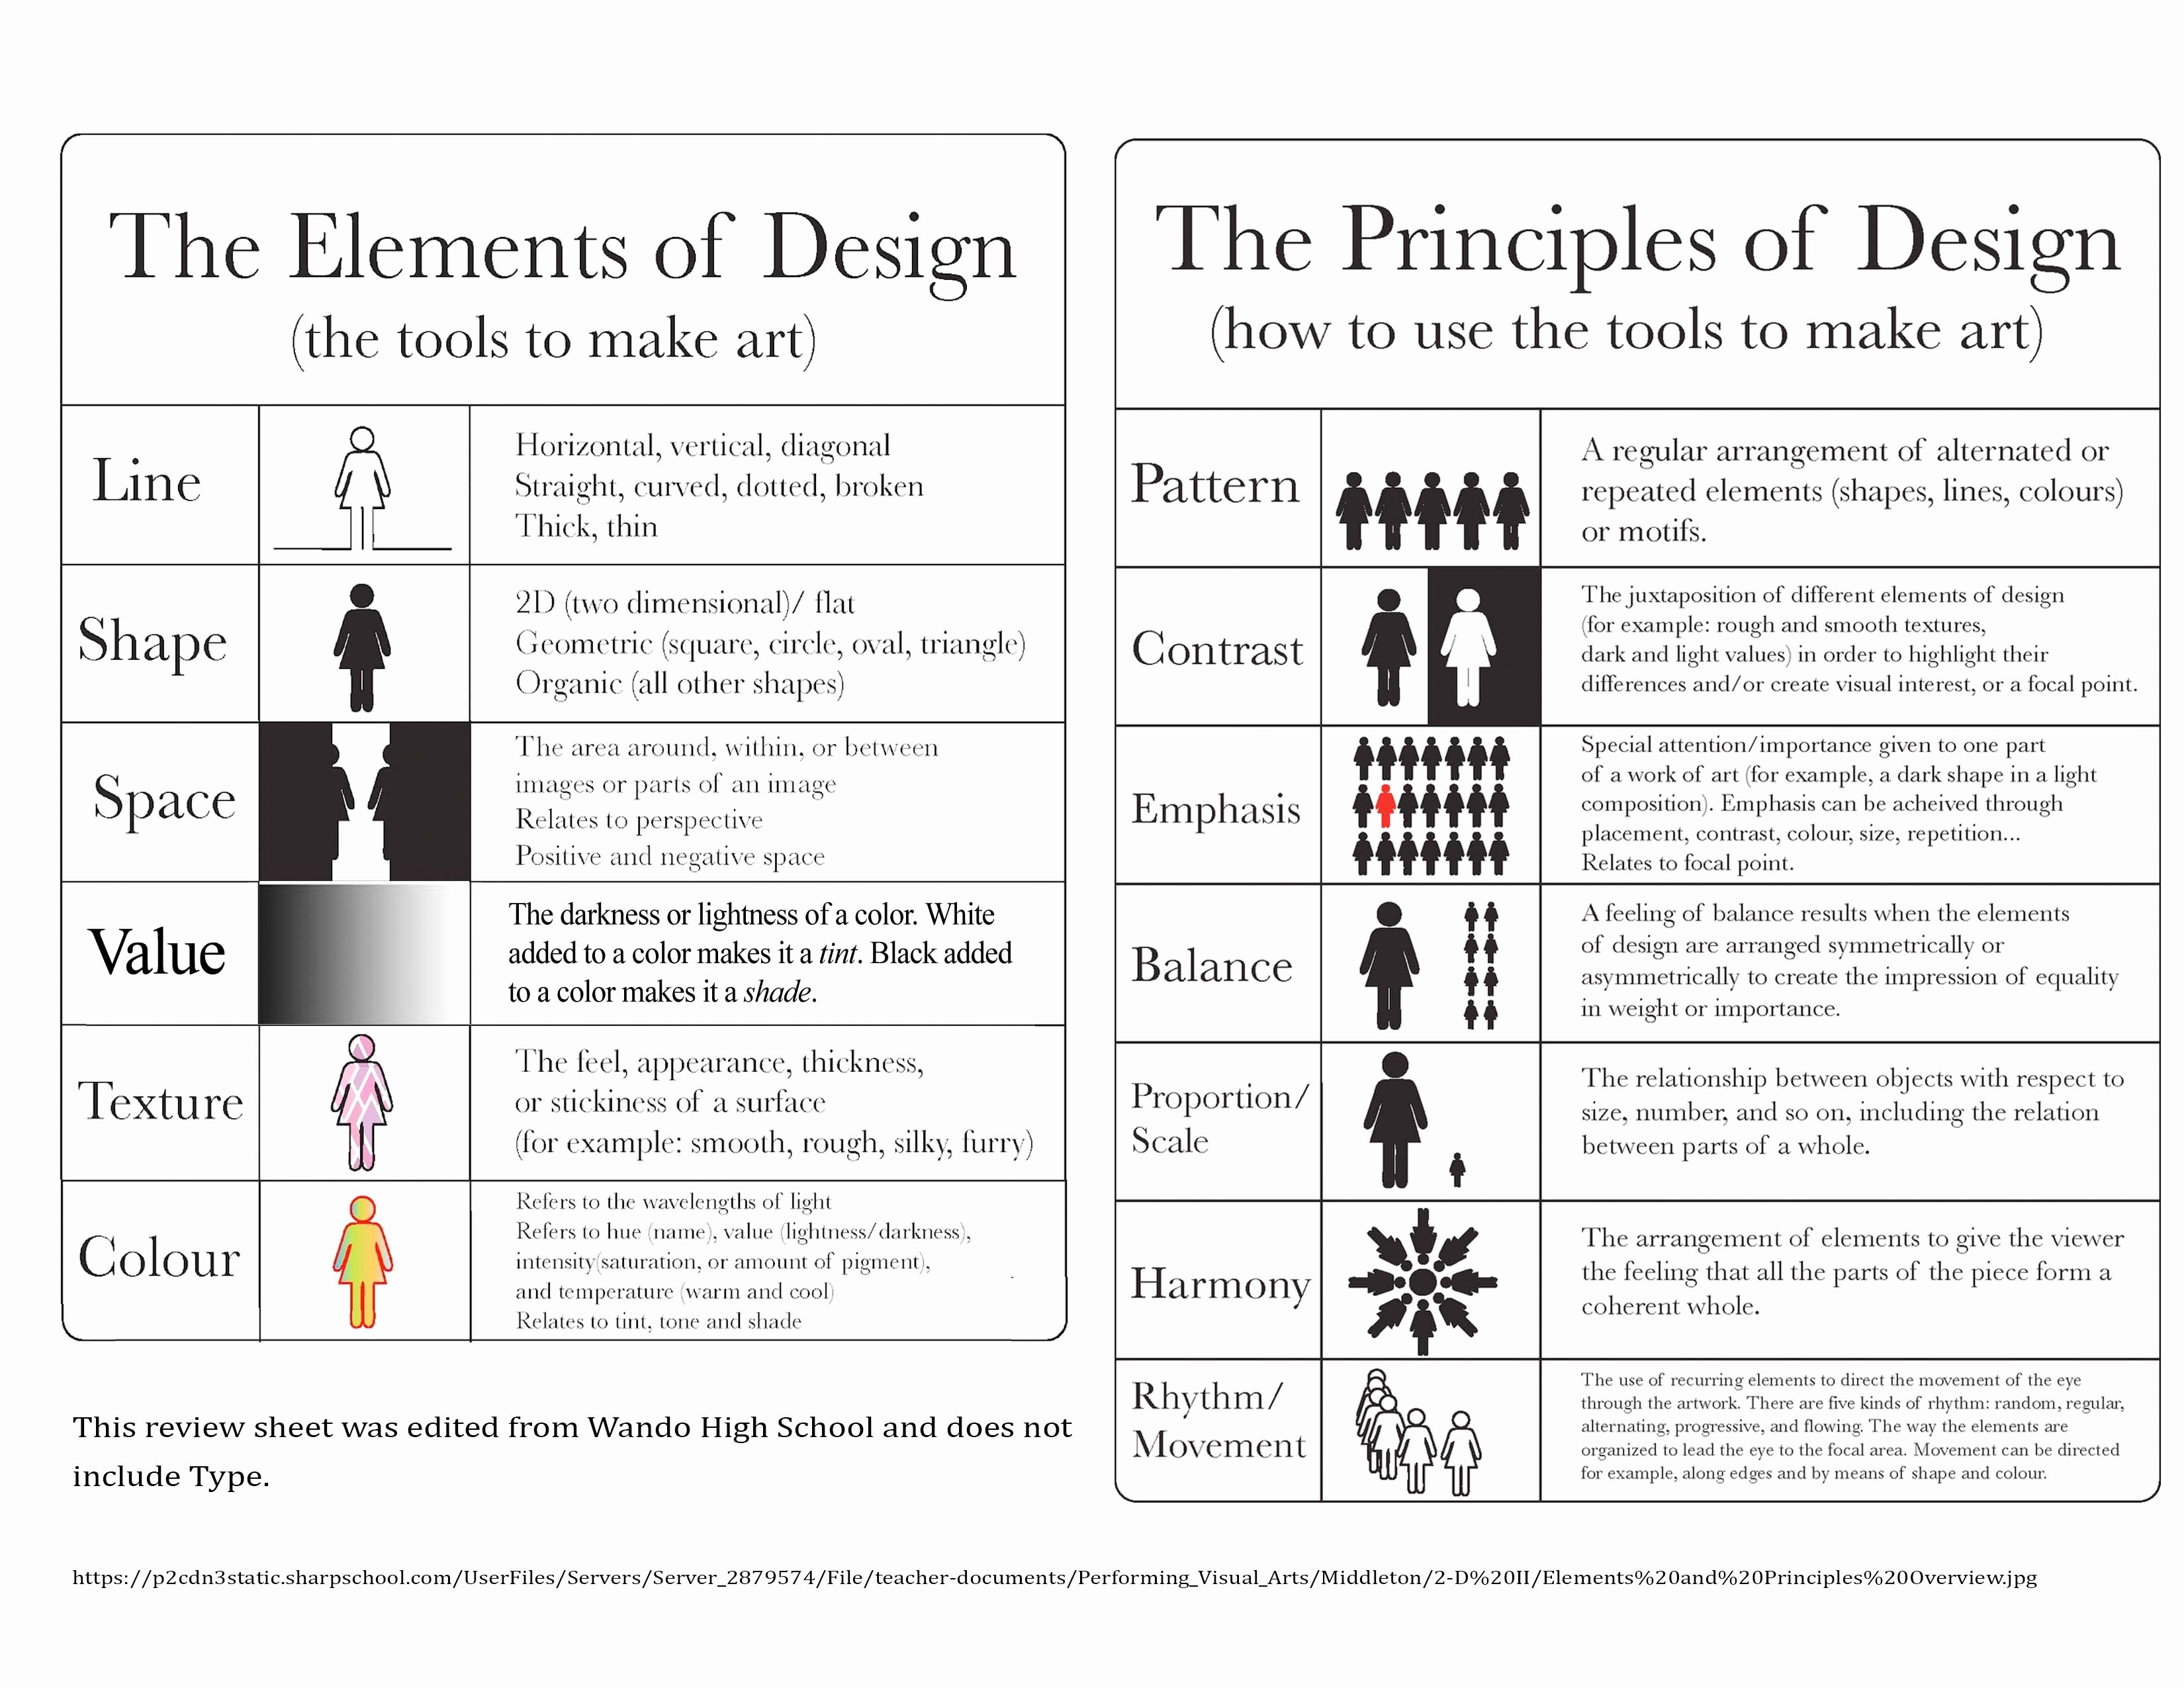 Principles Of Design Worksheet Best Of Elements & Principles Of Design Overview